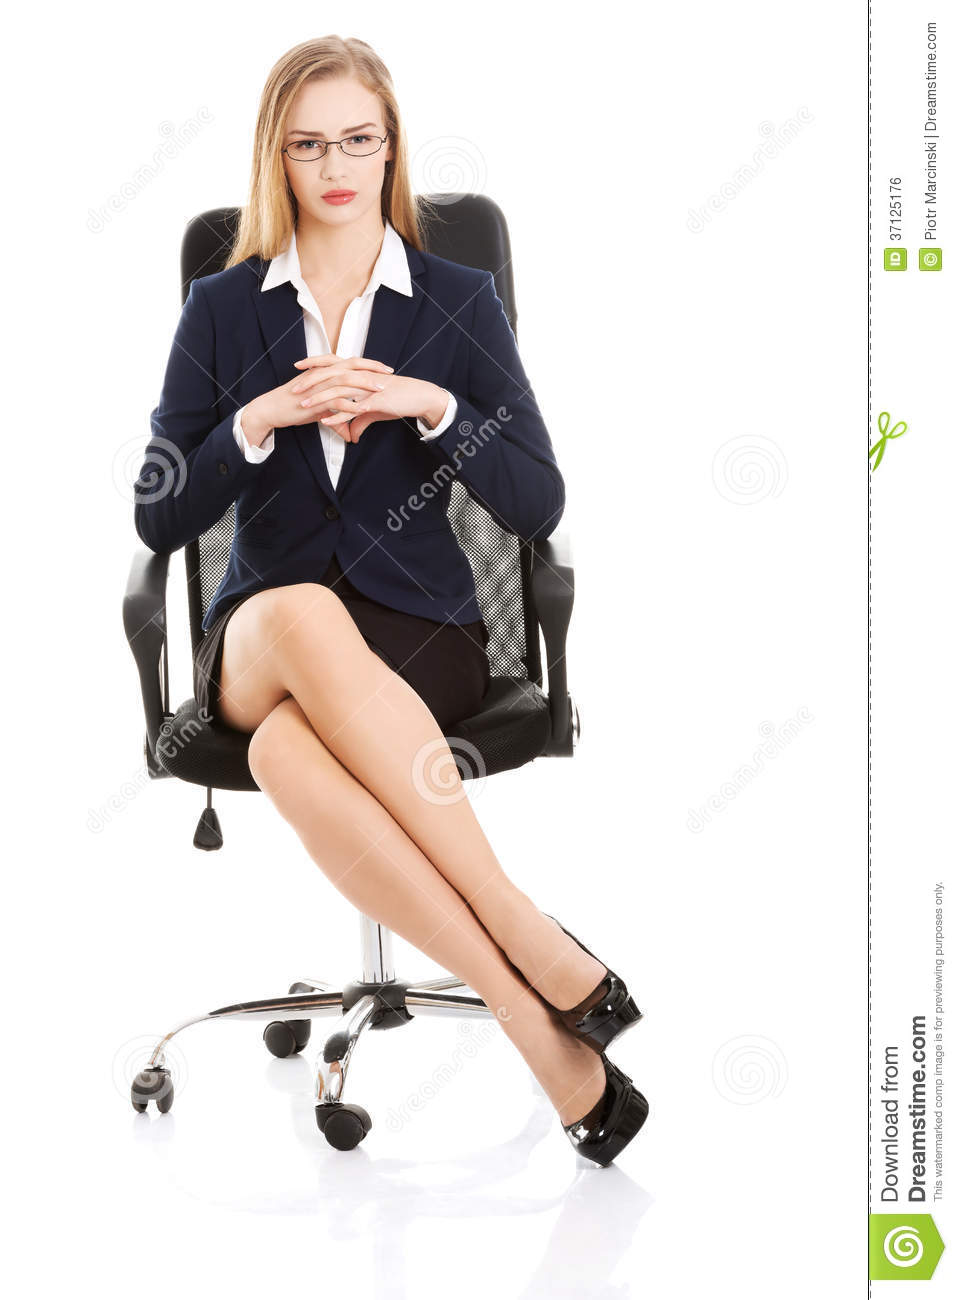 beautiful young business woman sitting on a chair  royalty free stock image